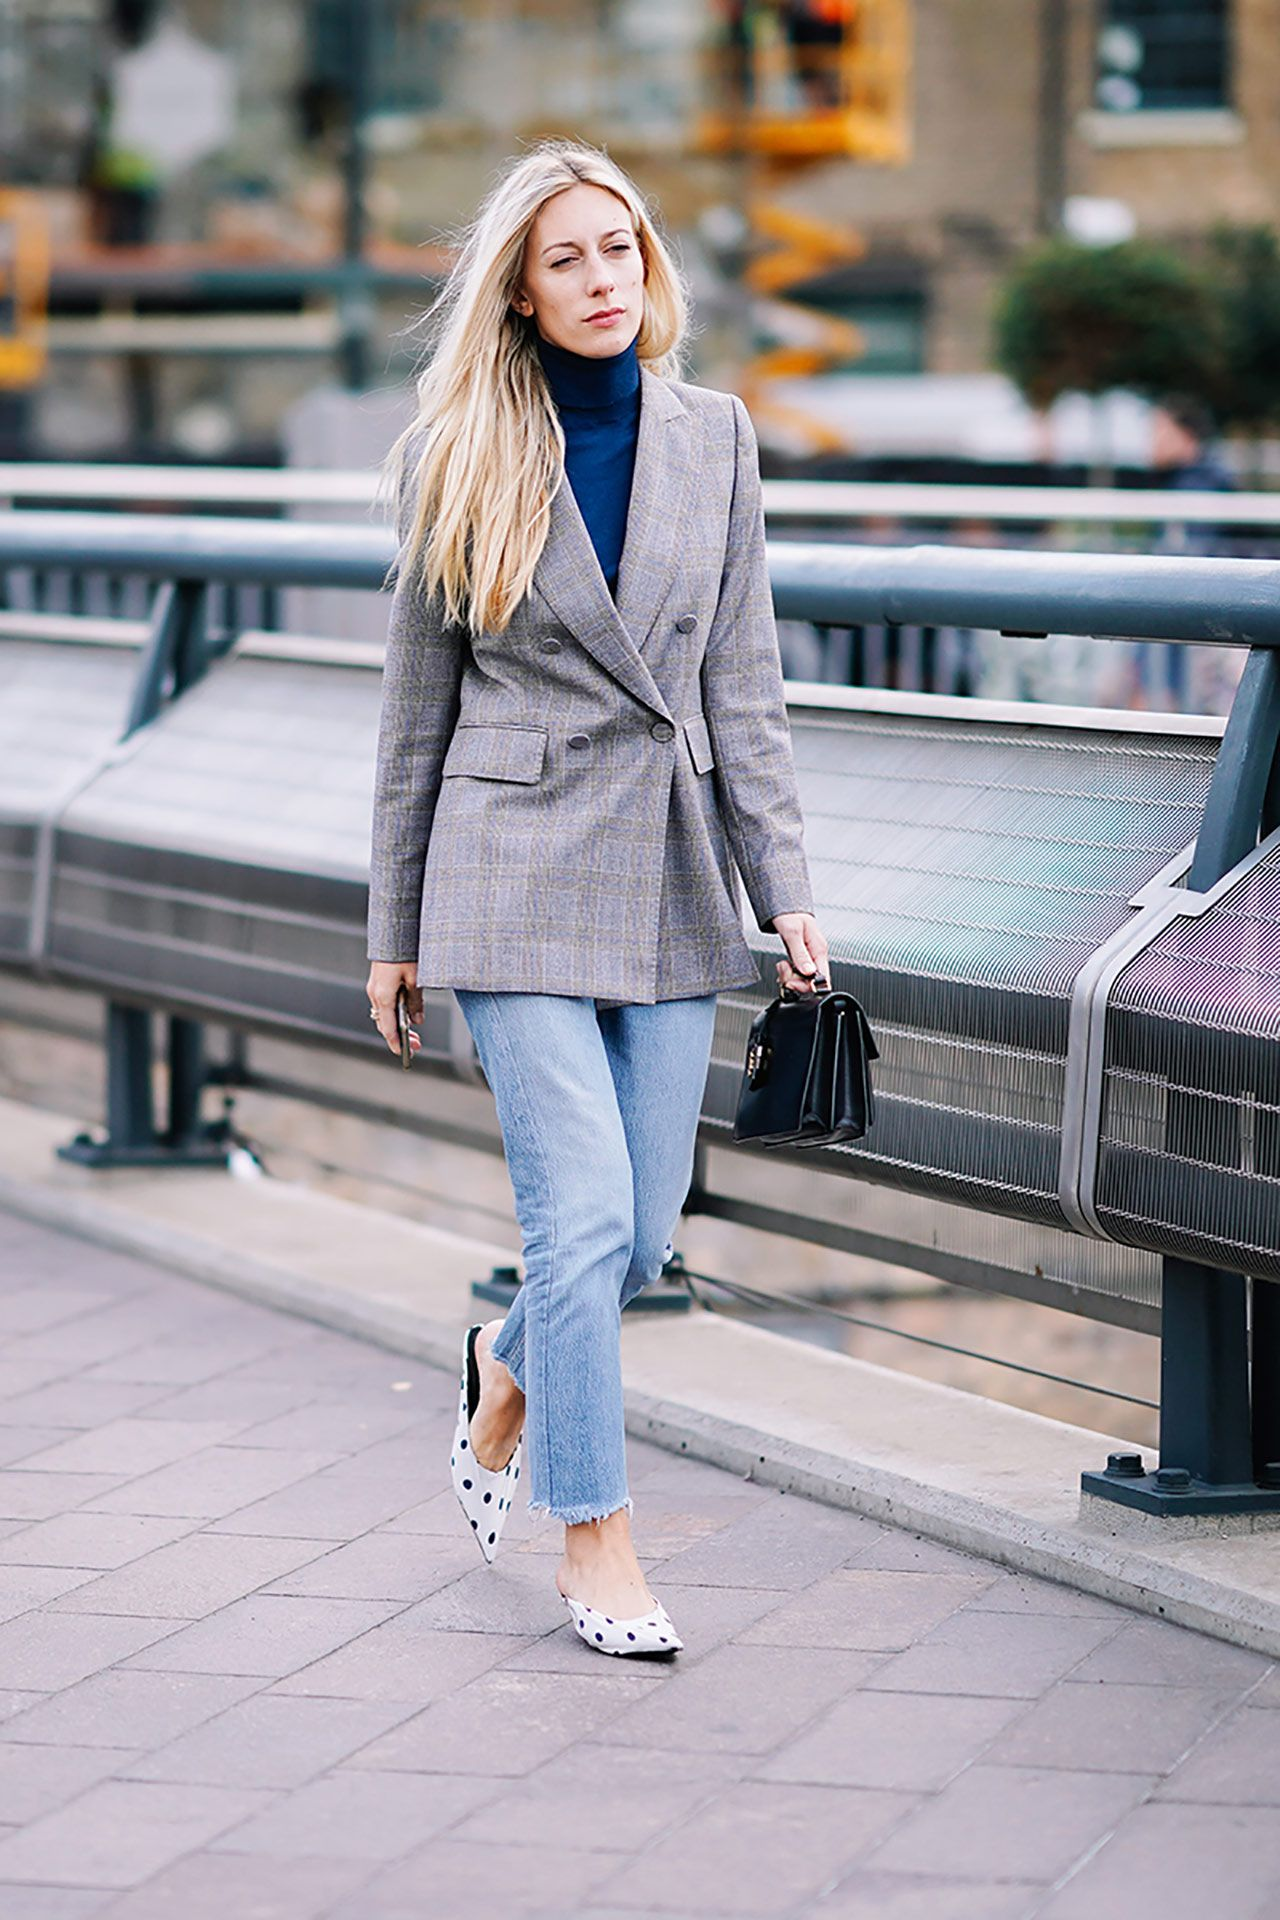 British Girls Are Obsessed With This Fall Trend Street Style Outfits Urban London Fashion Week Street Style Blazer Fashion